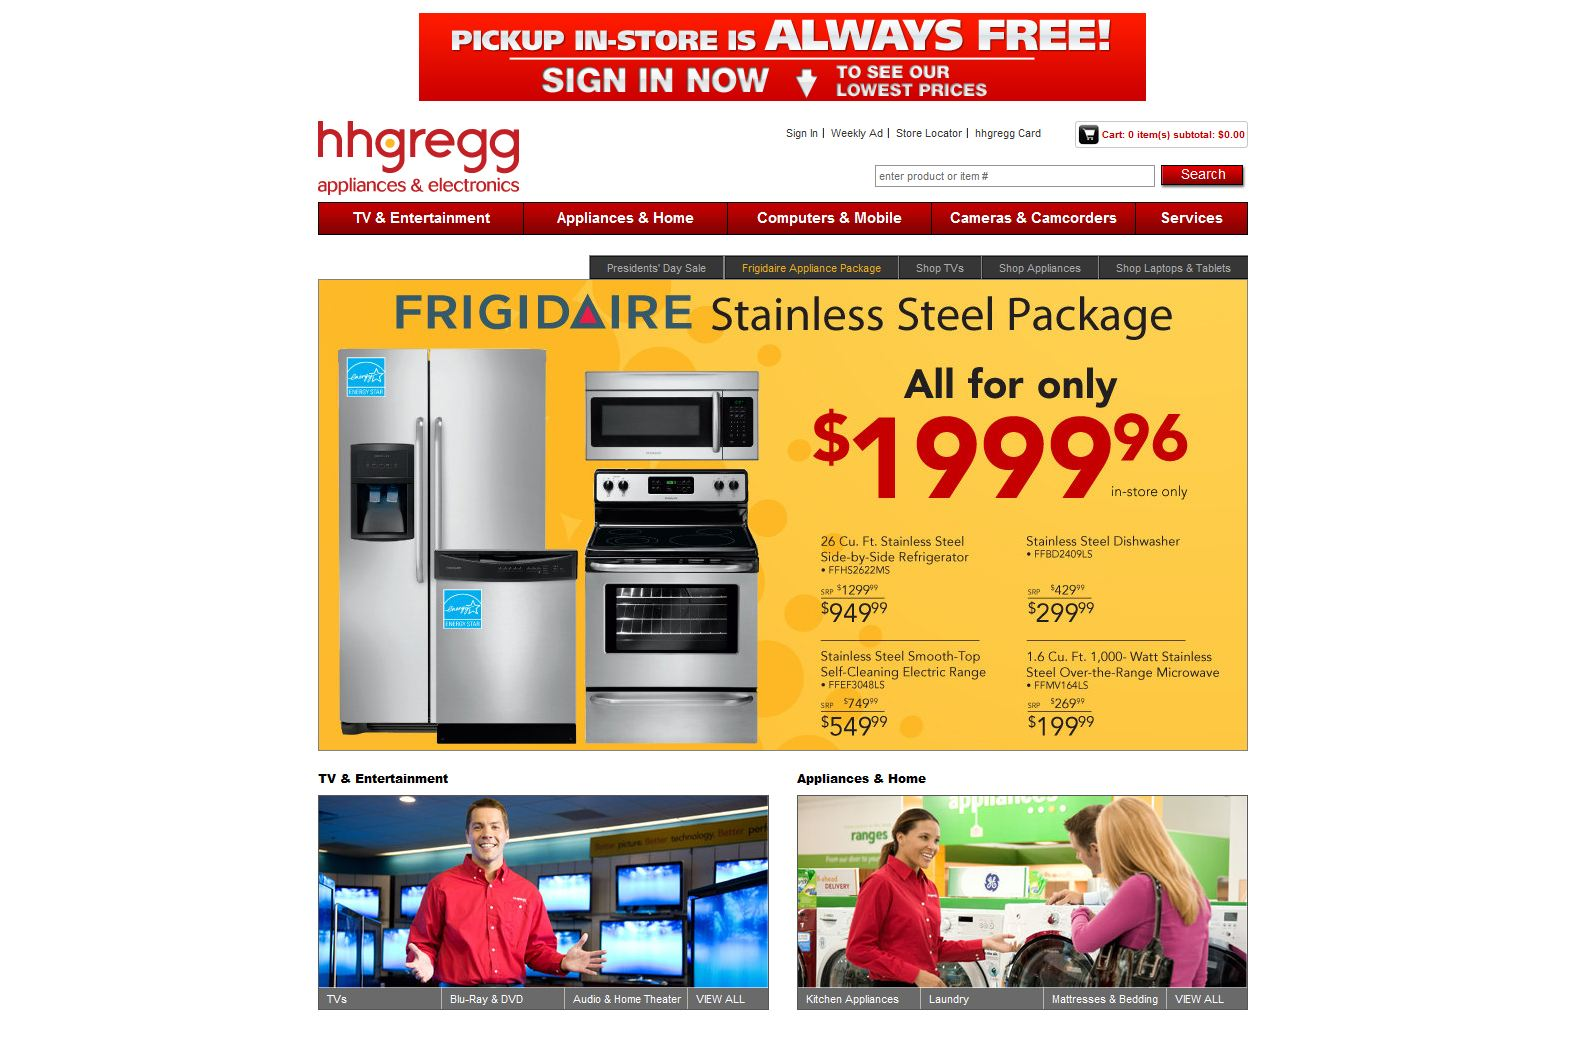 Hh gregg reviews 10139 reviews of hhgregg resellerratings hh gregg colourmoves